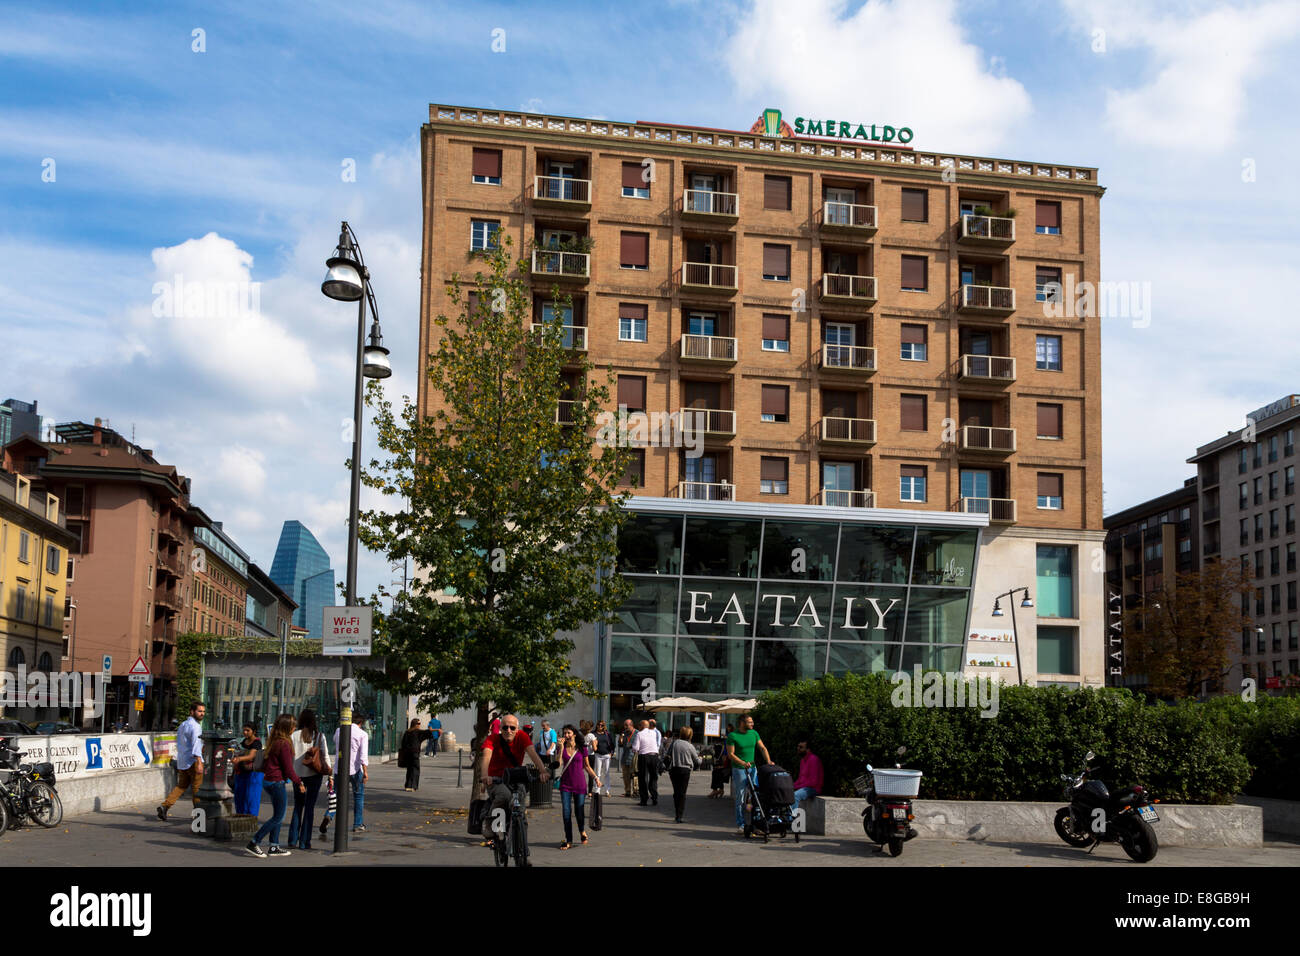 Eataly Smeraldo food store in Milan - Stock Image